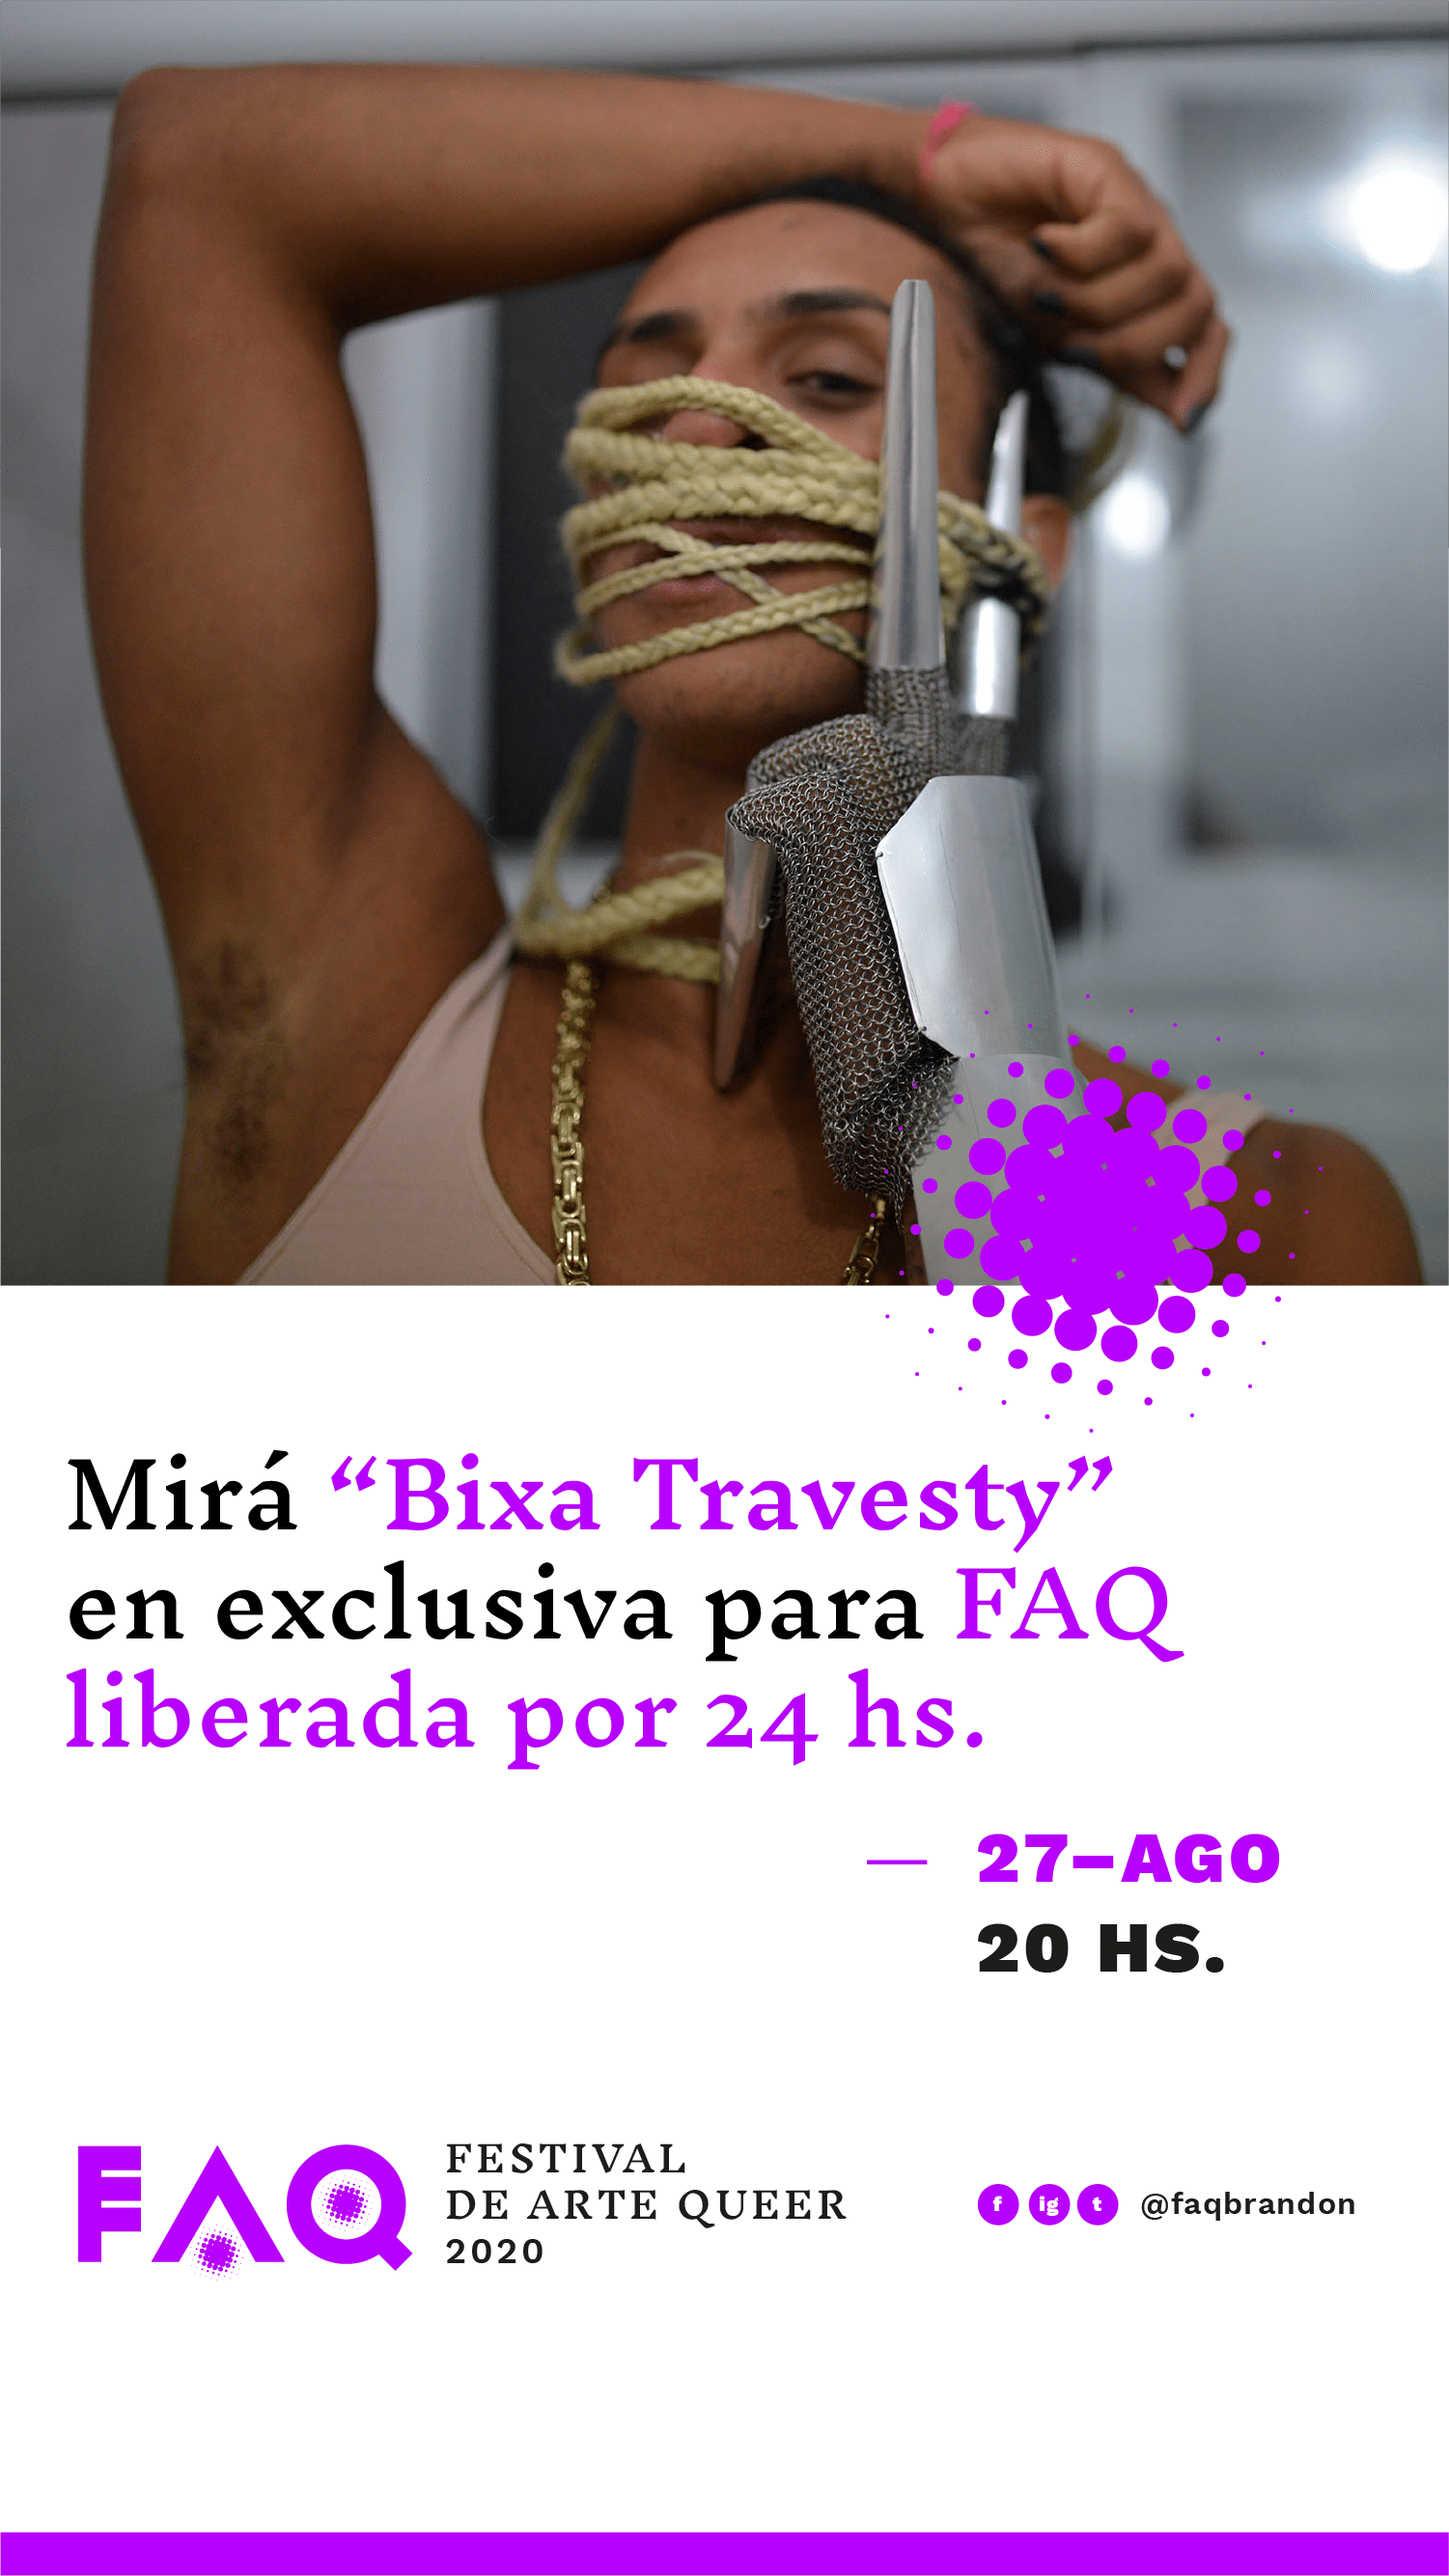 bixa travesty faq